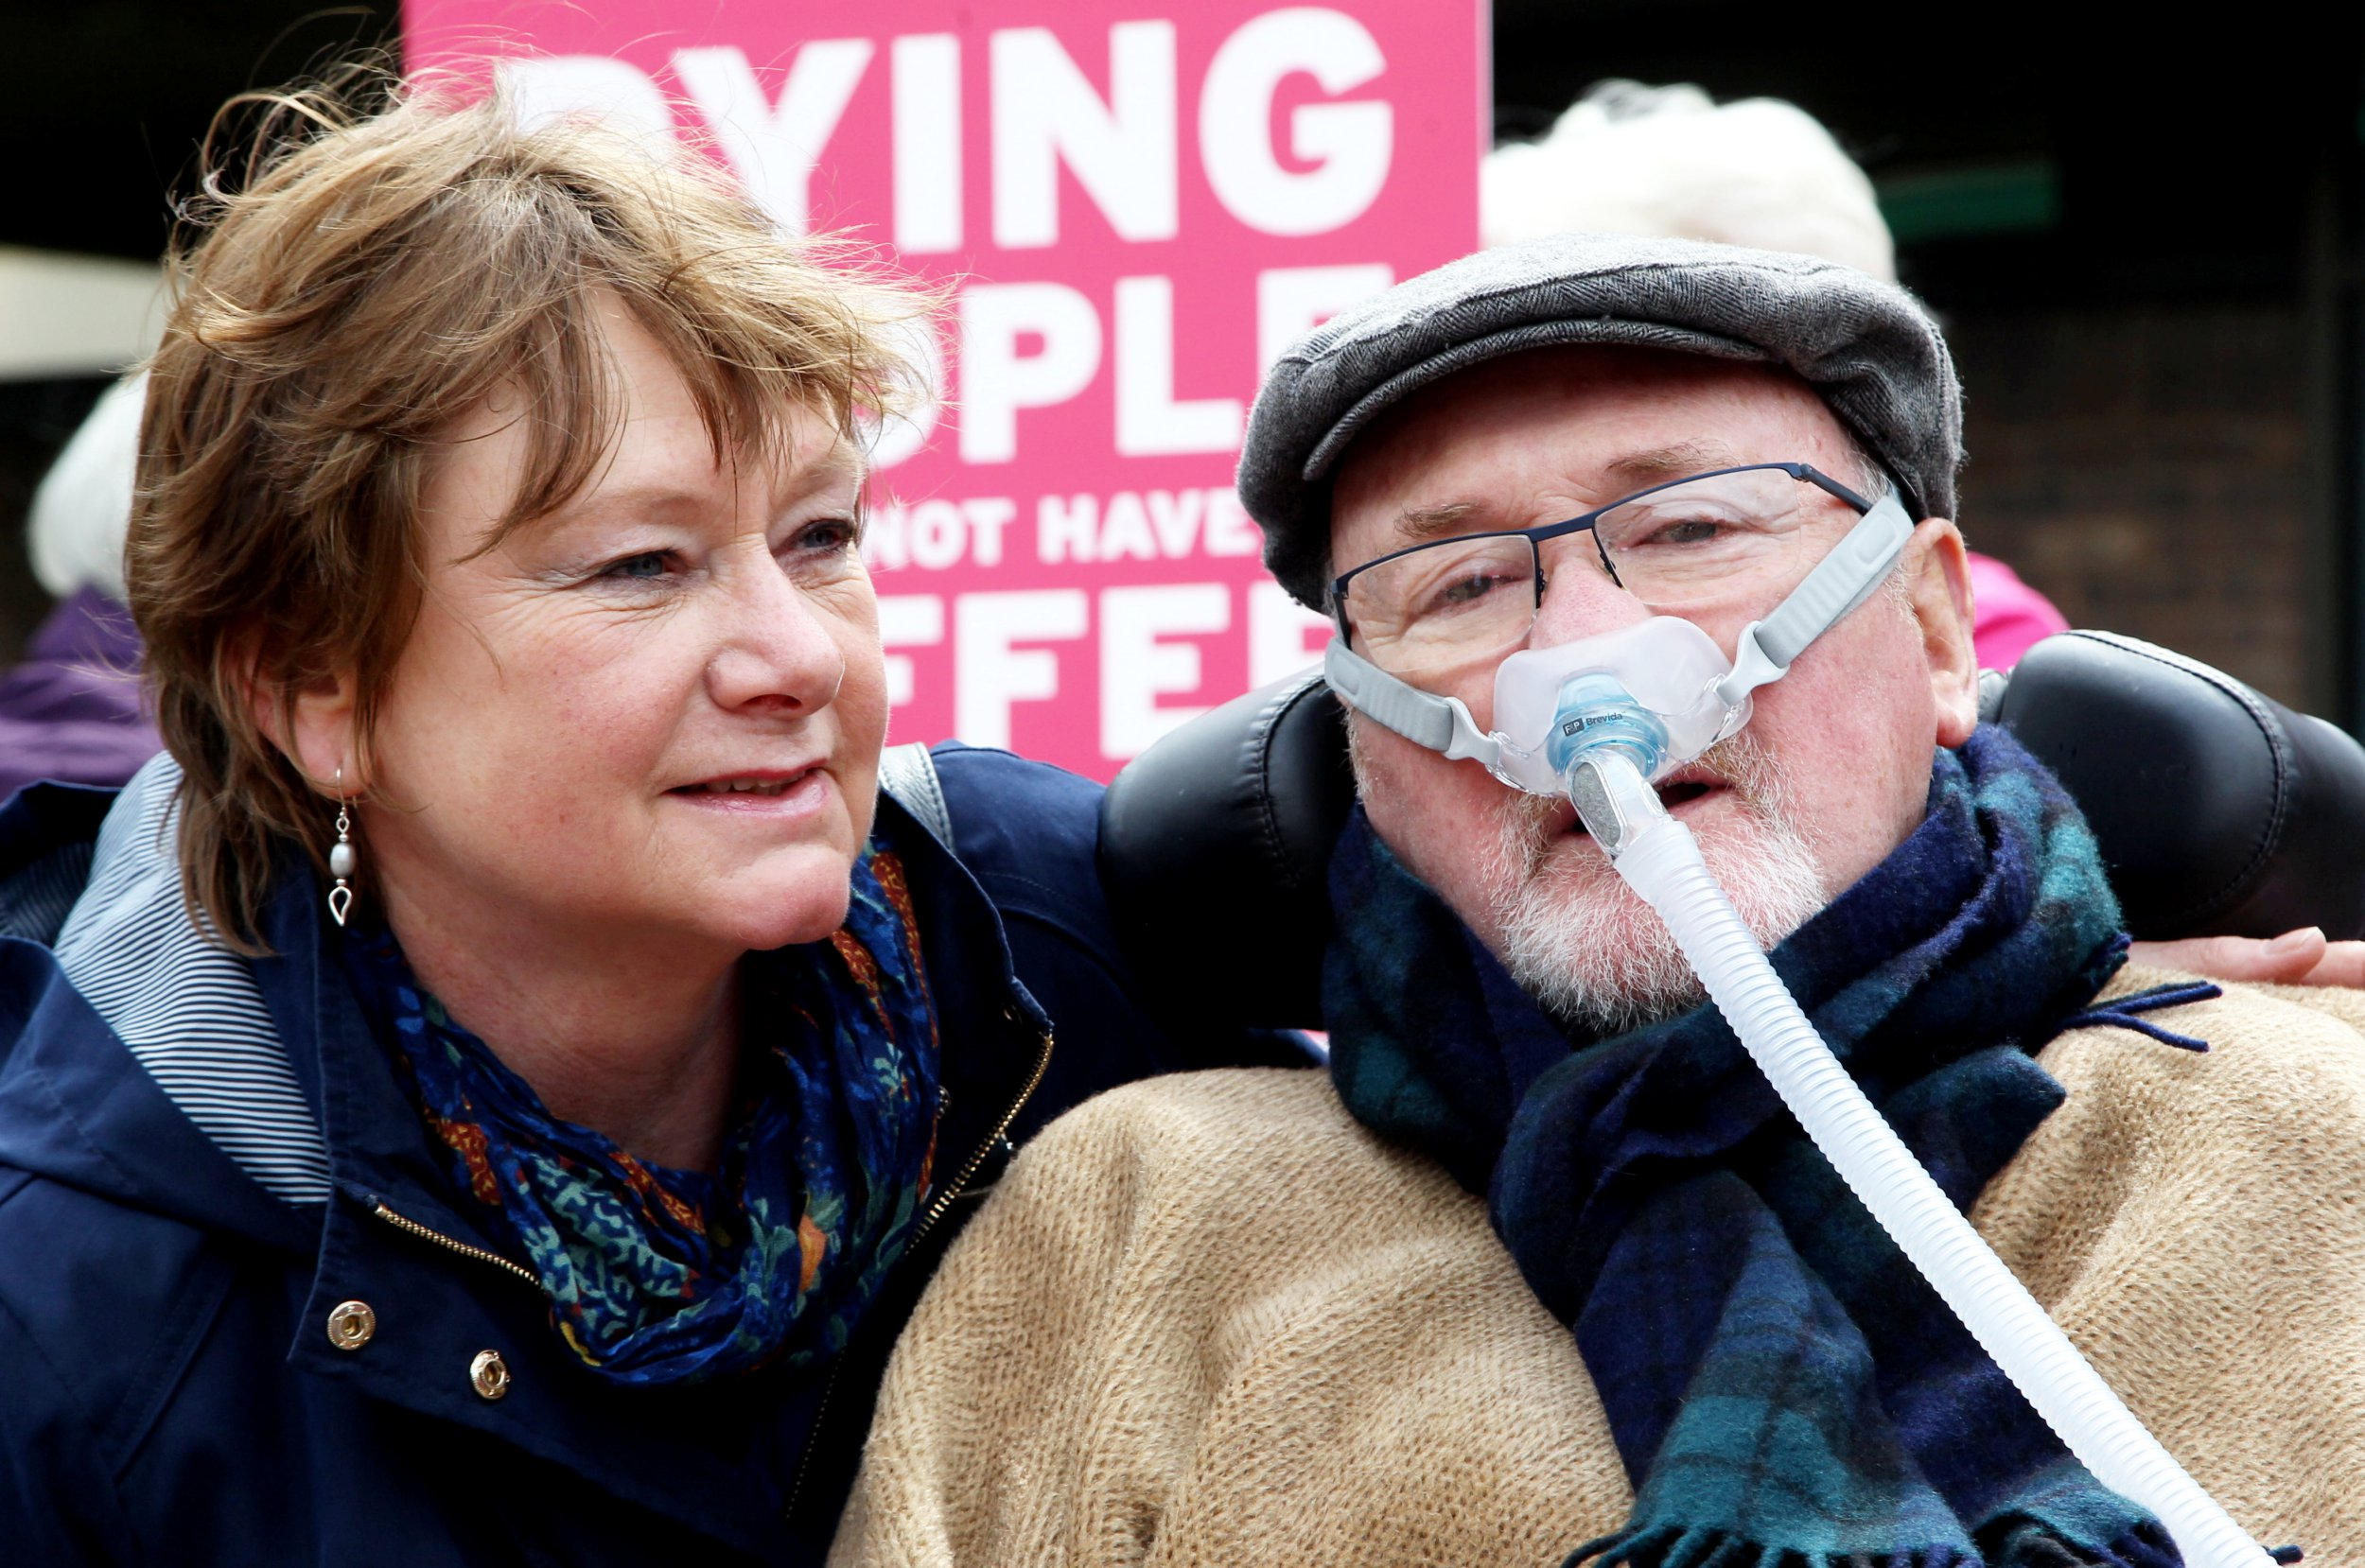 """Noel Conway with wife Carol and local supporters outside Telford County Court, Shropshire, May 1, 2018. A terminally ill man who is challenging the law on assisted suicide has asked judges to acknowledge his """"basic right to die"""" and to envisage themselves in his position. See NTI story NTIDYING. Noel Conway, 68, was speaking before his case is heard at the Court of Appeal. He has motor neurone disease (MND), an incurable, progressive, muscle-wasting condition. Diagnosed in 2014, he is in a wheelchair and has almost no movement below his neck. He wants a doctor to be allowed to prescribe him a lethal dose of drugs when he feels life has become unbearable."""